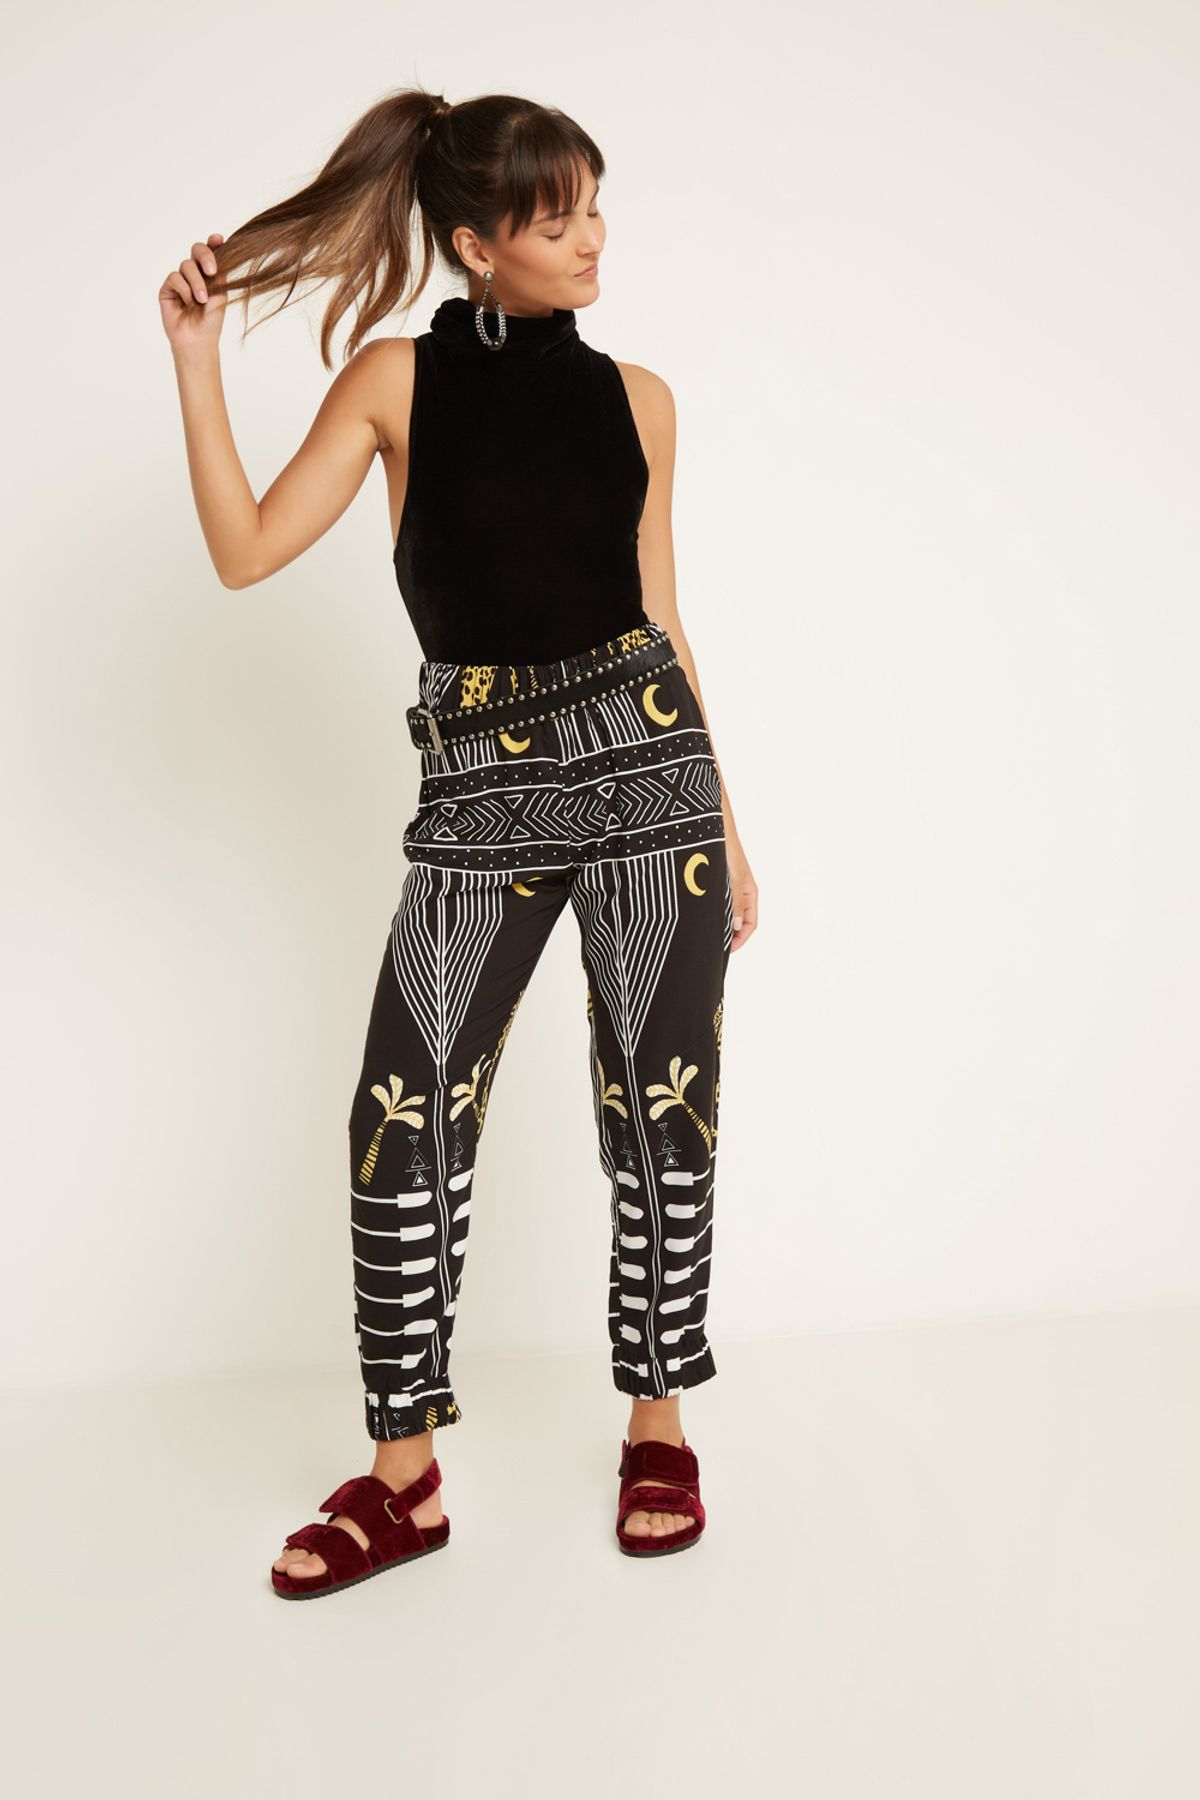 CALCA-SWEATPANT-EST-LUNA-020202790901-OH-BOY